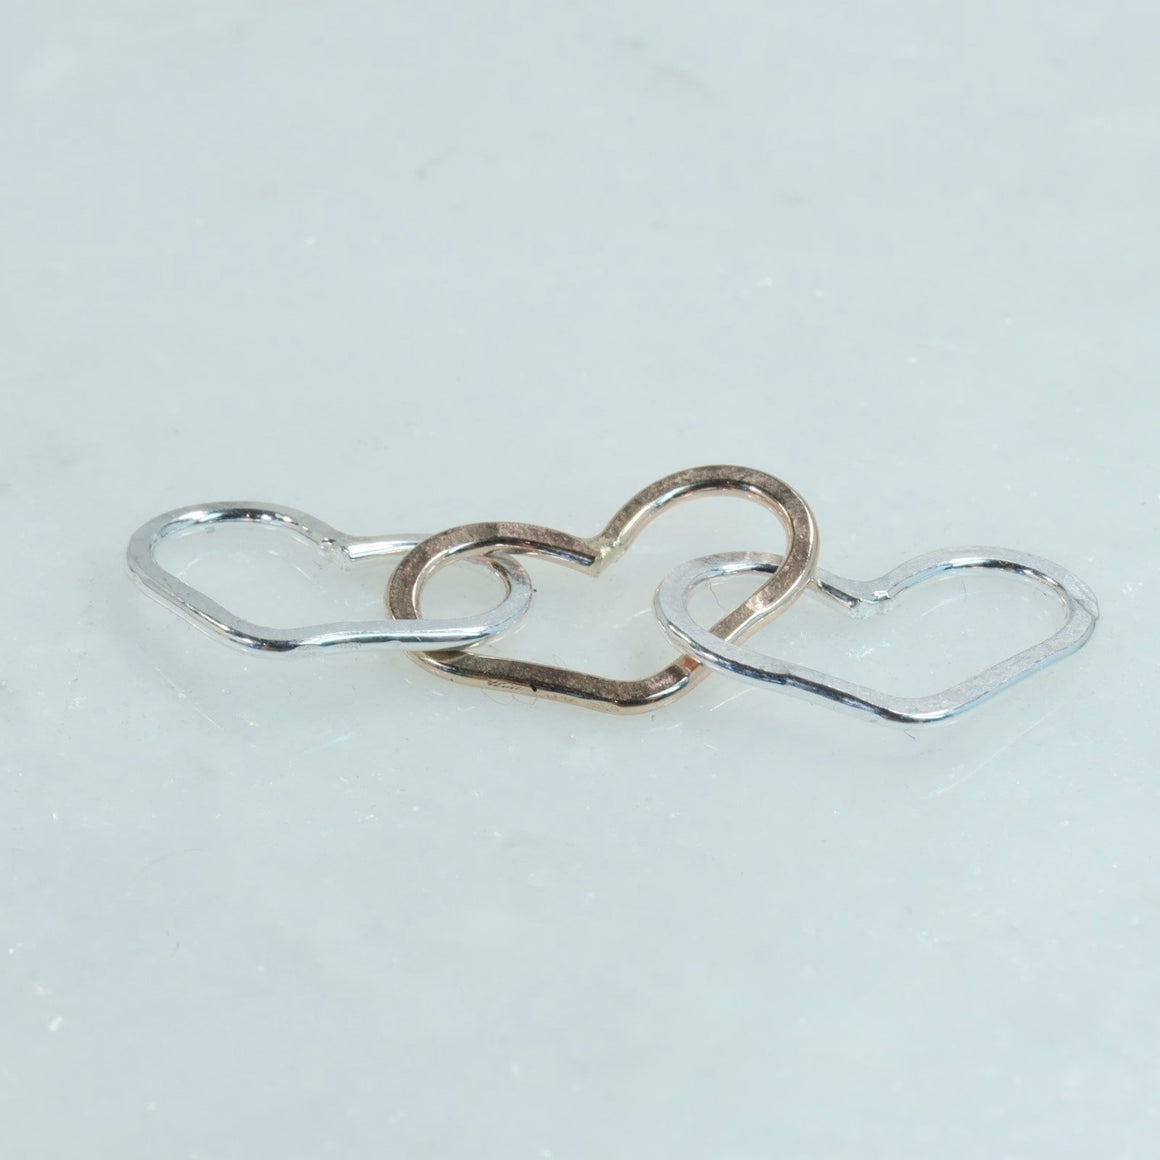 silver & gold heart links for jewelry making